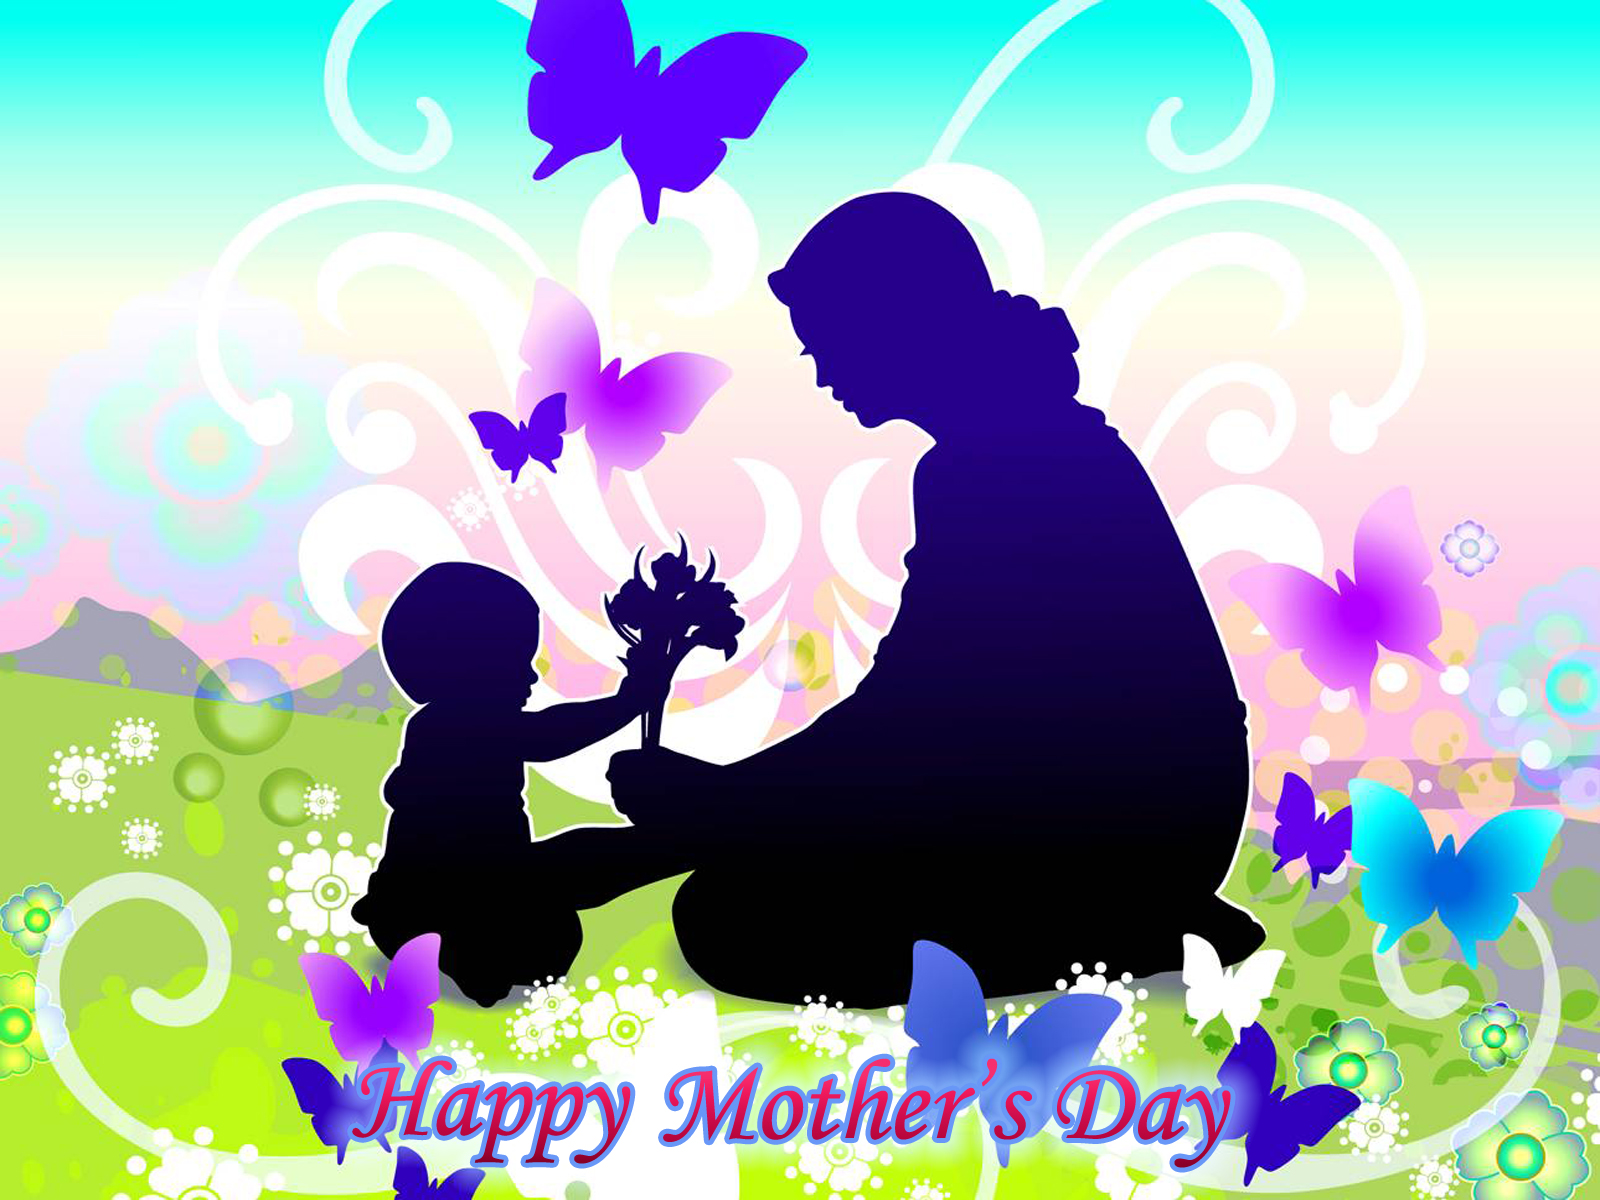 Mothers Day Wallpaper Download